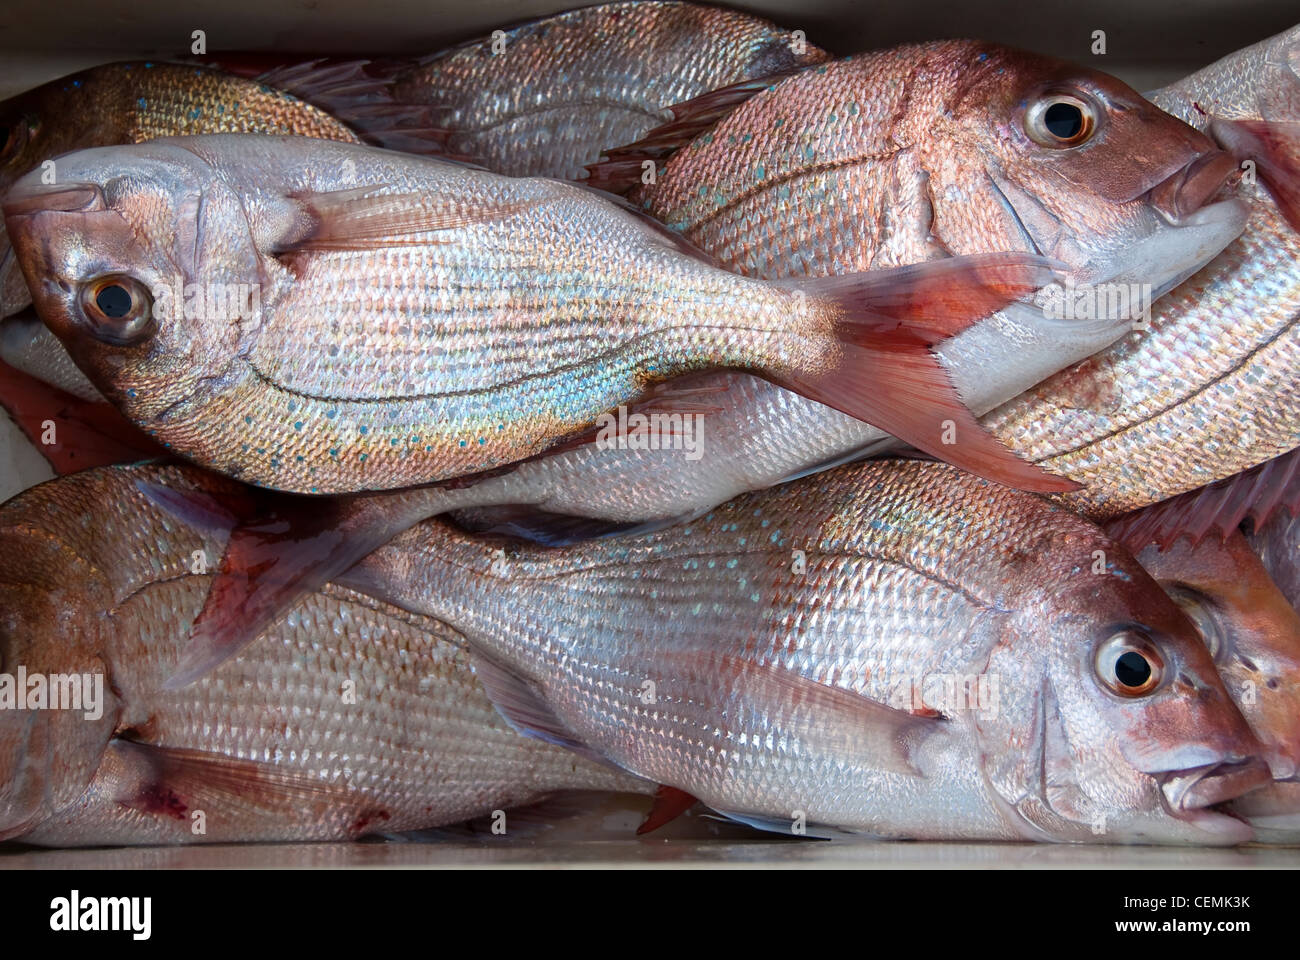 fresh caught red snapper stockfotos fresh caught red snapper bilder alamy. Black Bedroom Furniture Sets. Home Design Ideas